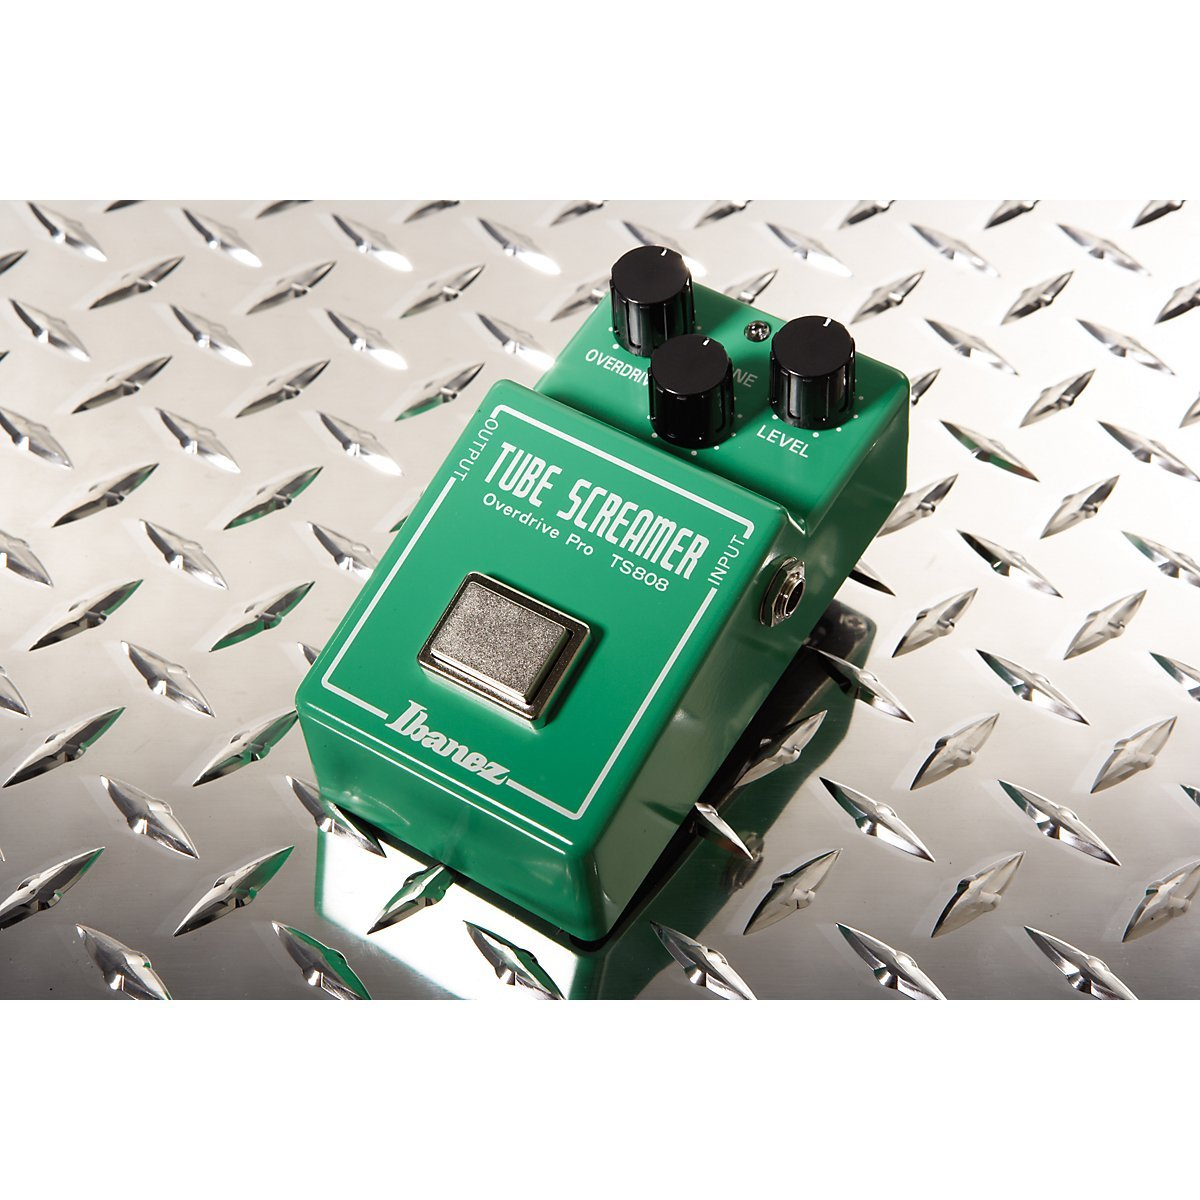 Ibanez Ts808dx Tube Screamer Booster Overdrive Pedal Ts808 Wiring Diagram Musical Instruments